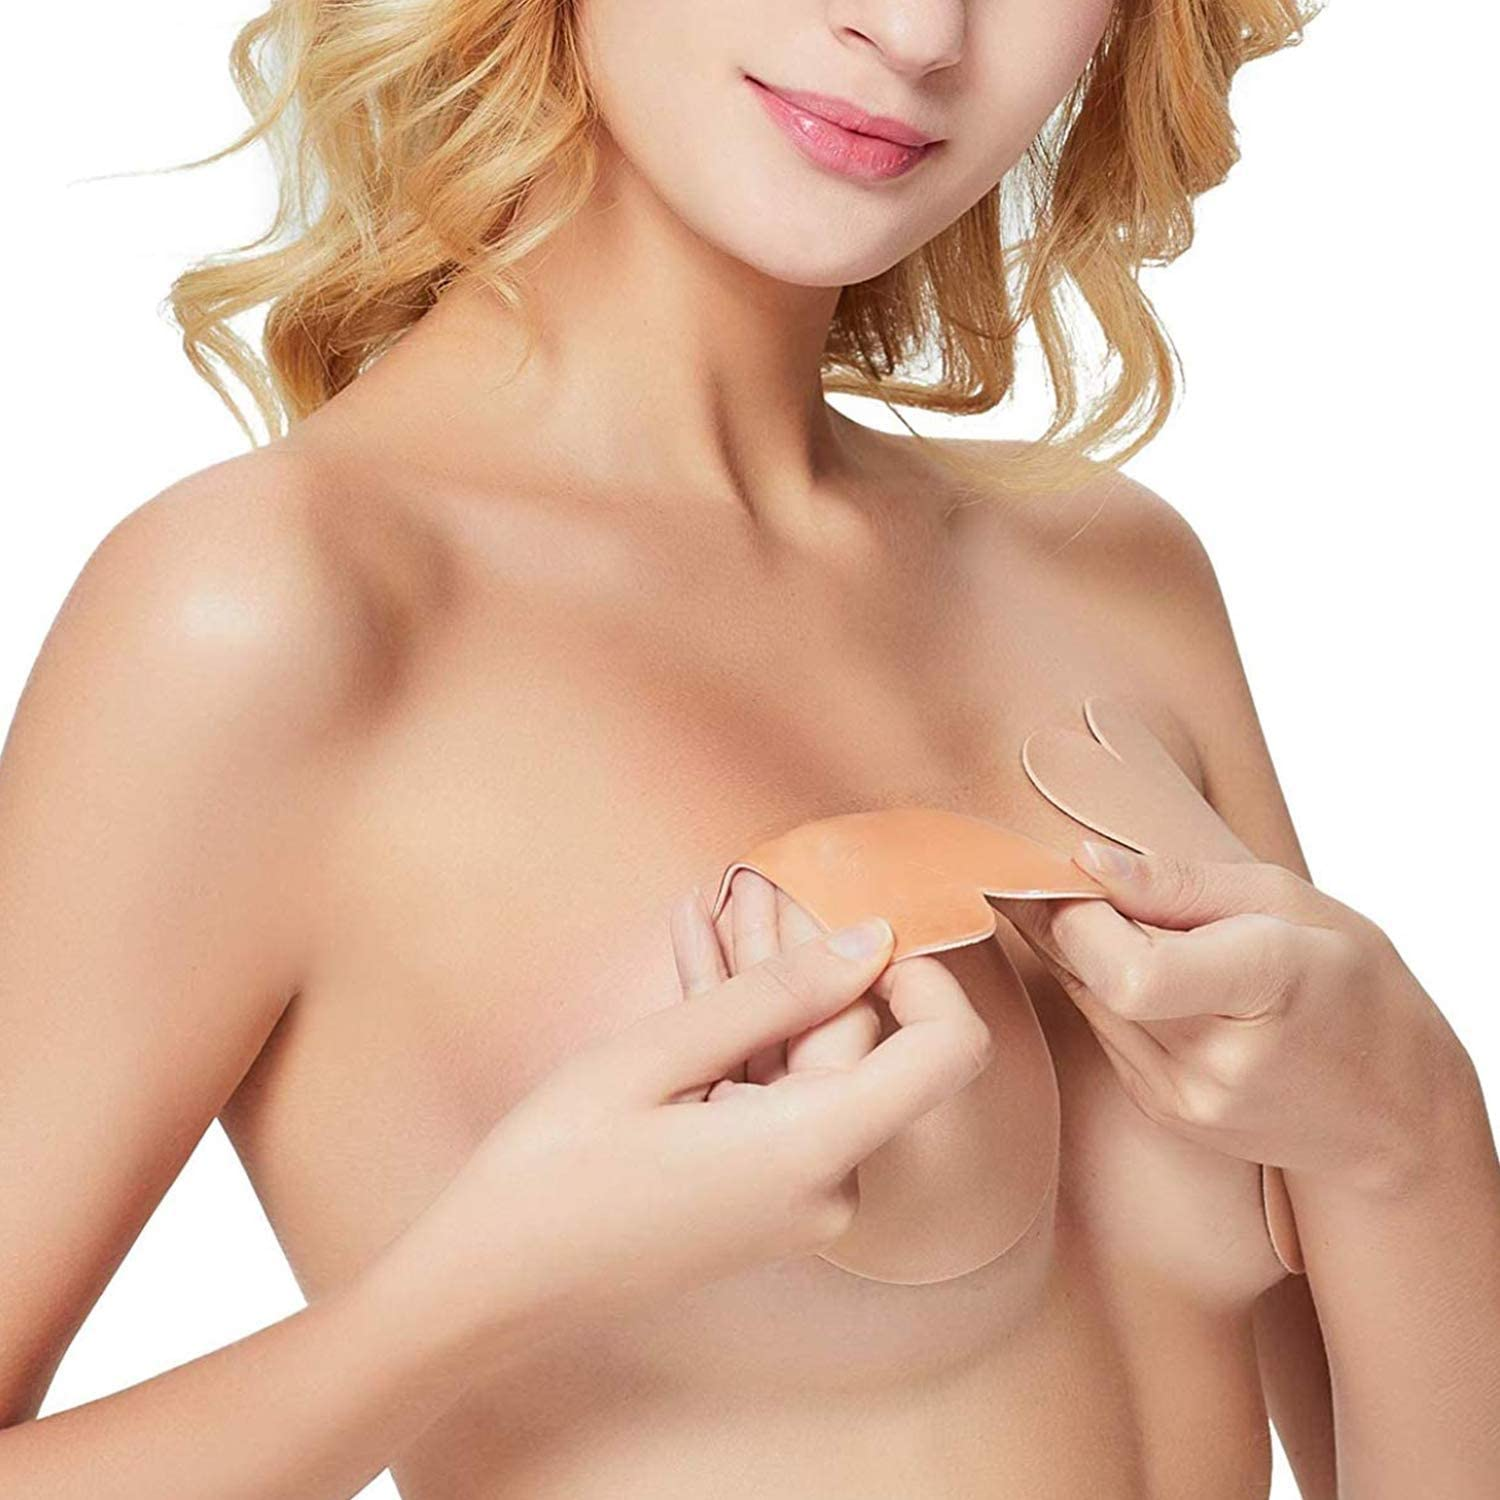 Invisible Soft Nipple Cover Bra Pad Skin Adhesive Floral Lips Heart Apple Shapes